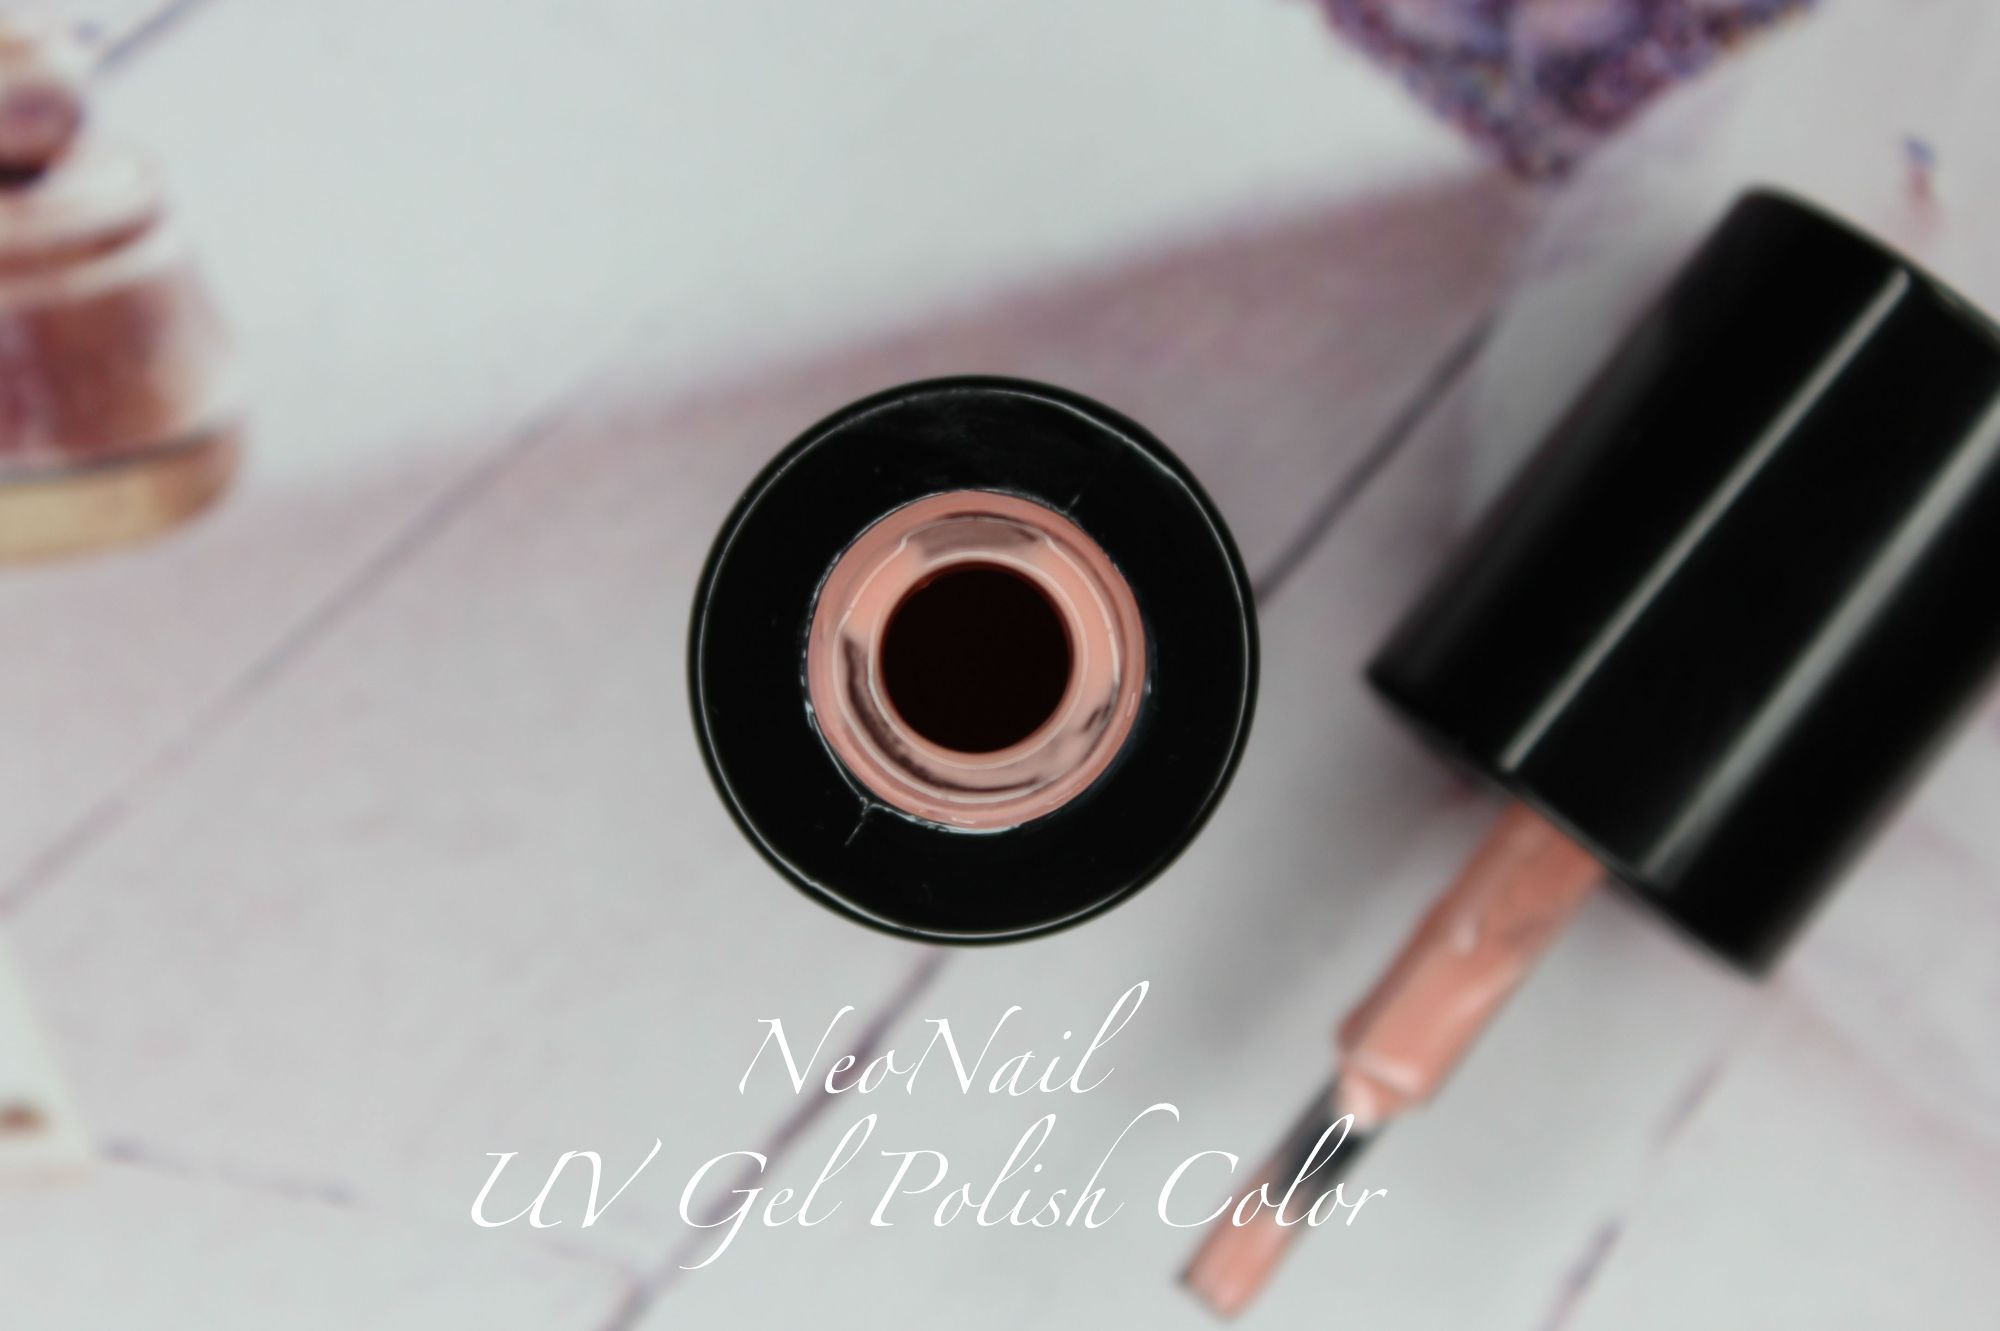 TOP 16 - NeoNail UV Gel Polish Color in Cashmere Rose 2